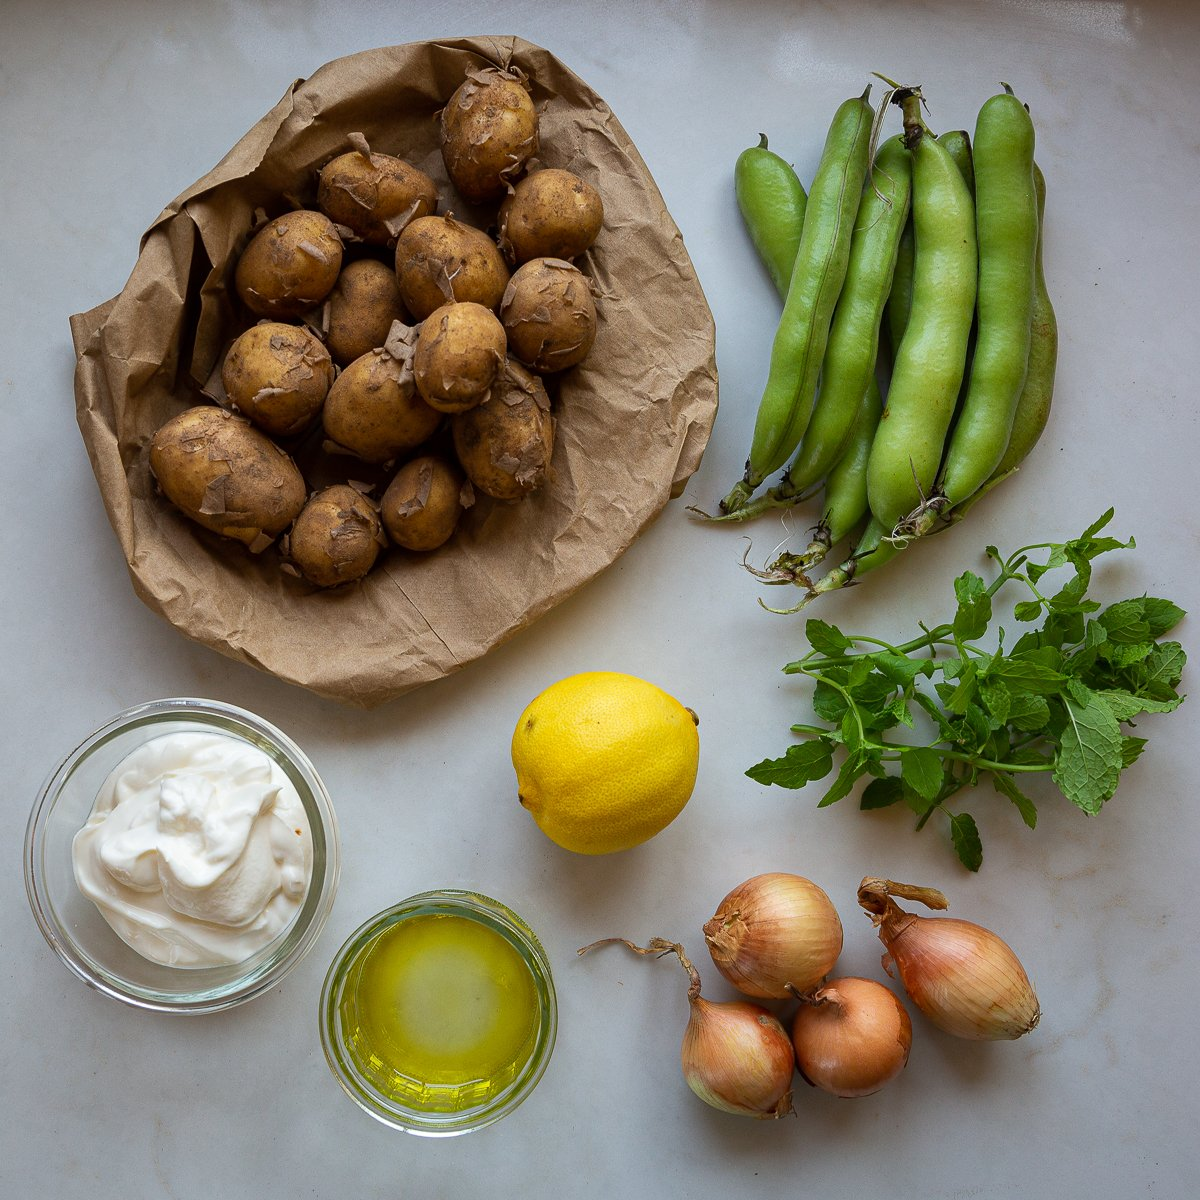 All the ingredients needed to make Light broad bean potato salad